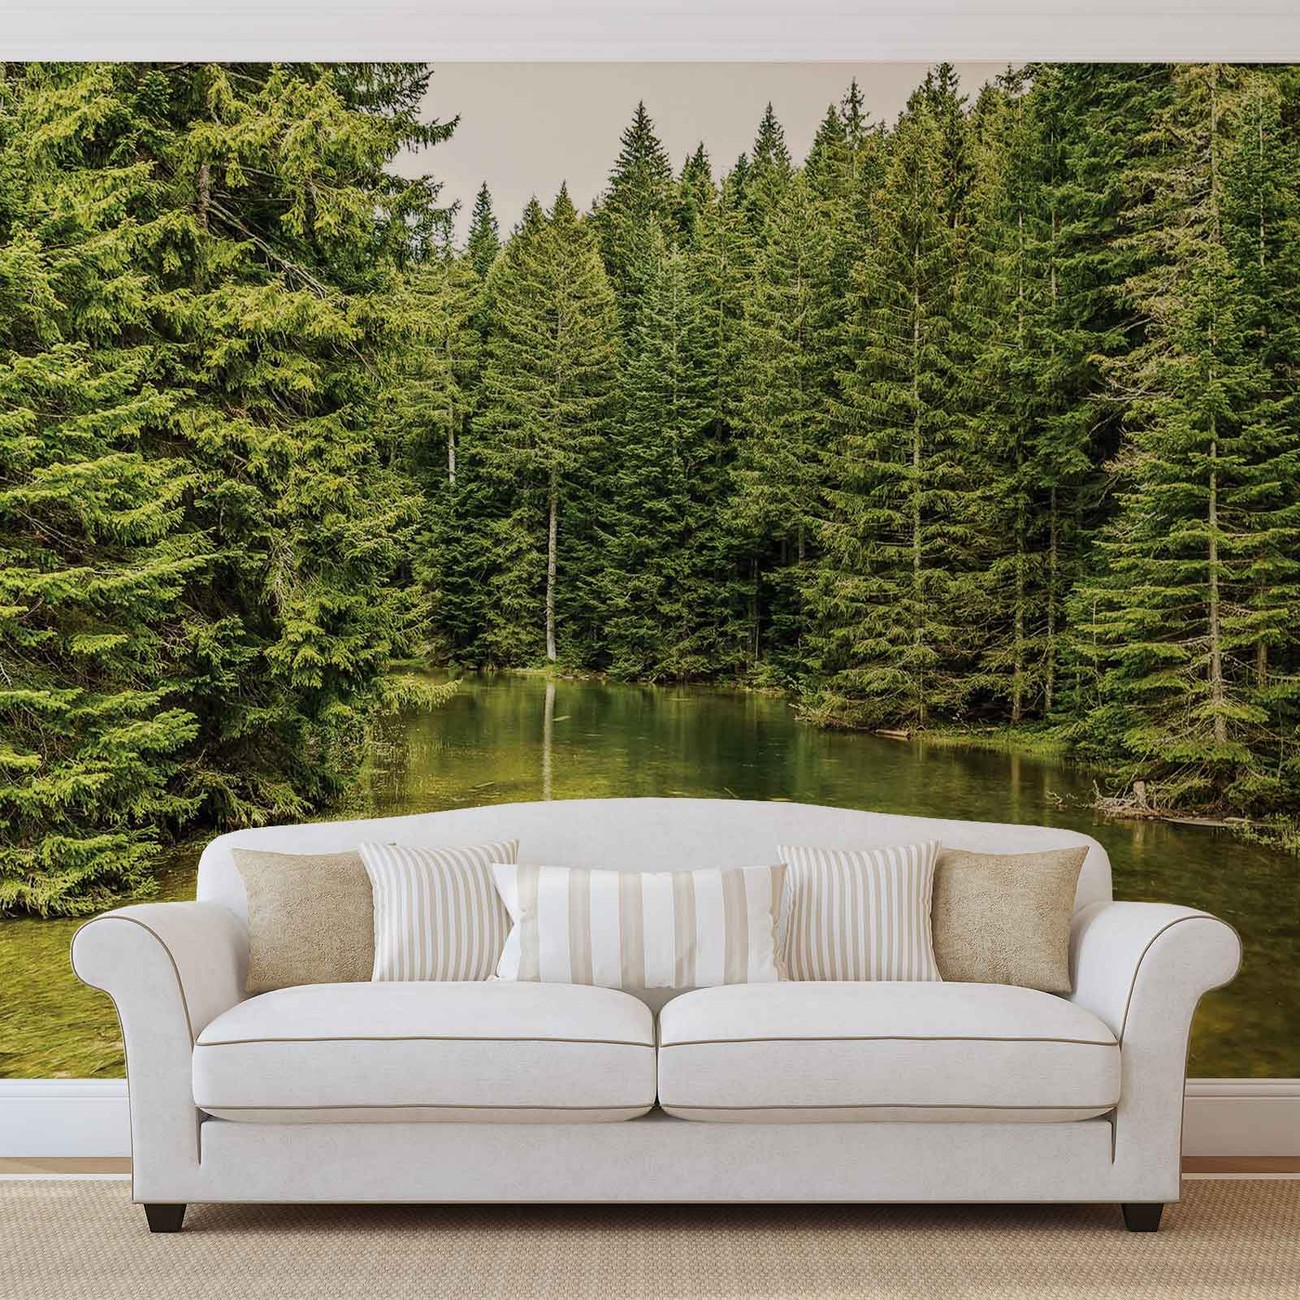 fototapete tapete fluss wald natur bei europosters. Black Bedroom Furniture Sets. Home Design Ideas